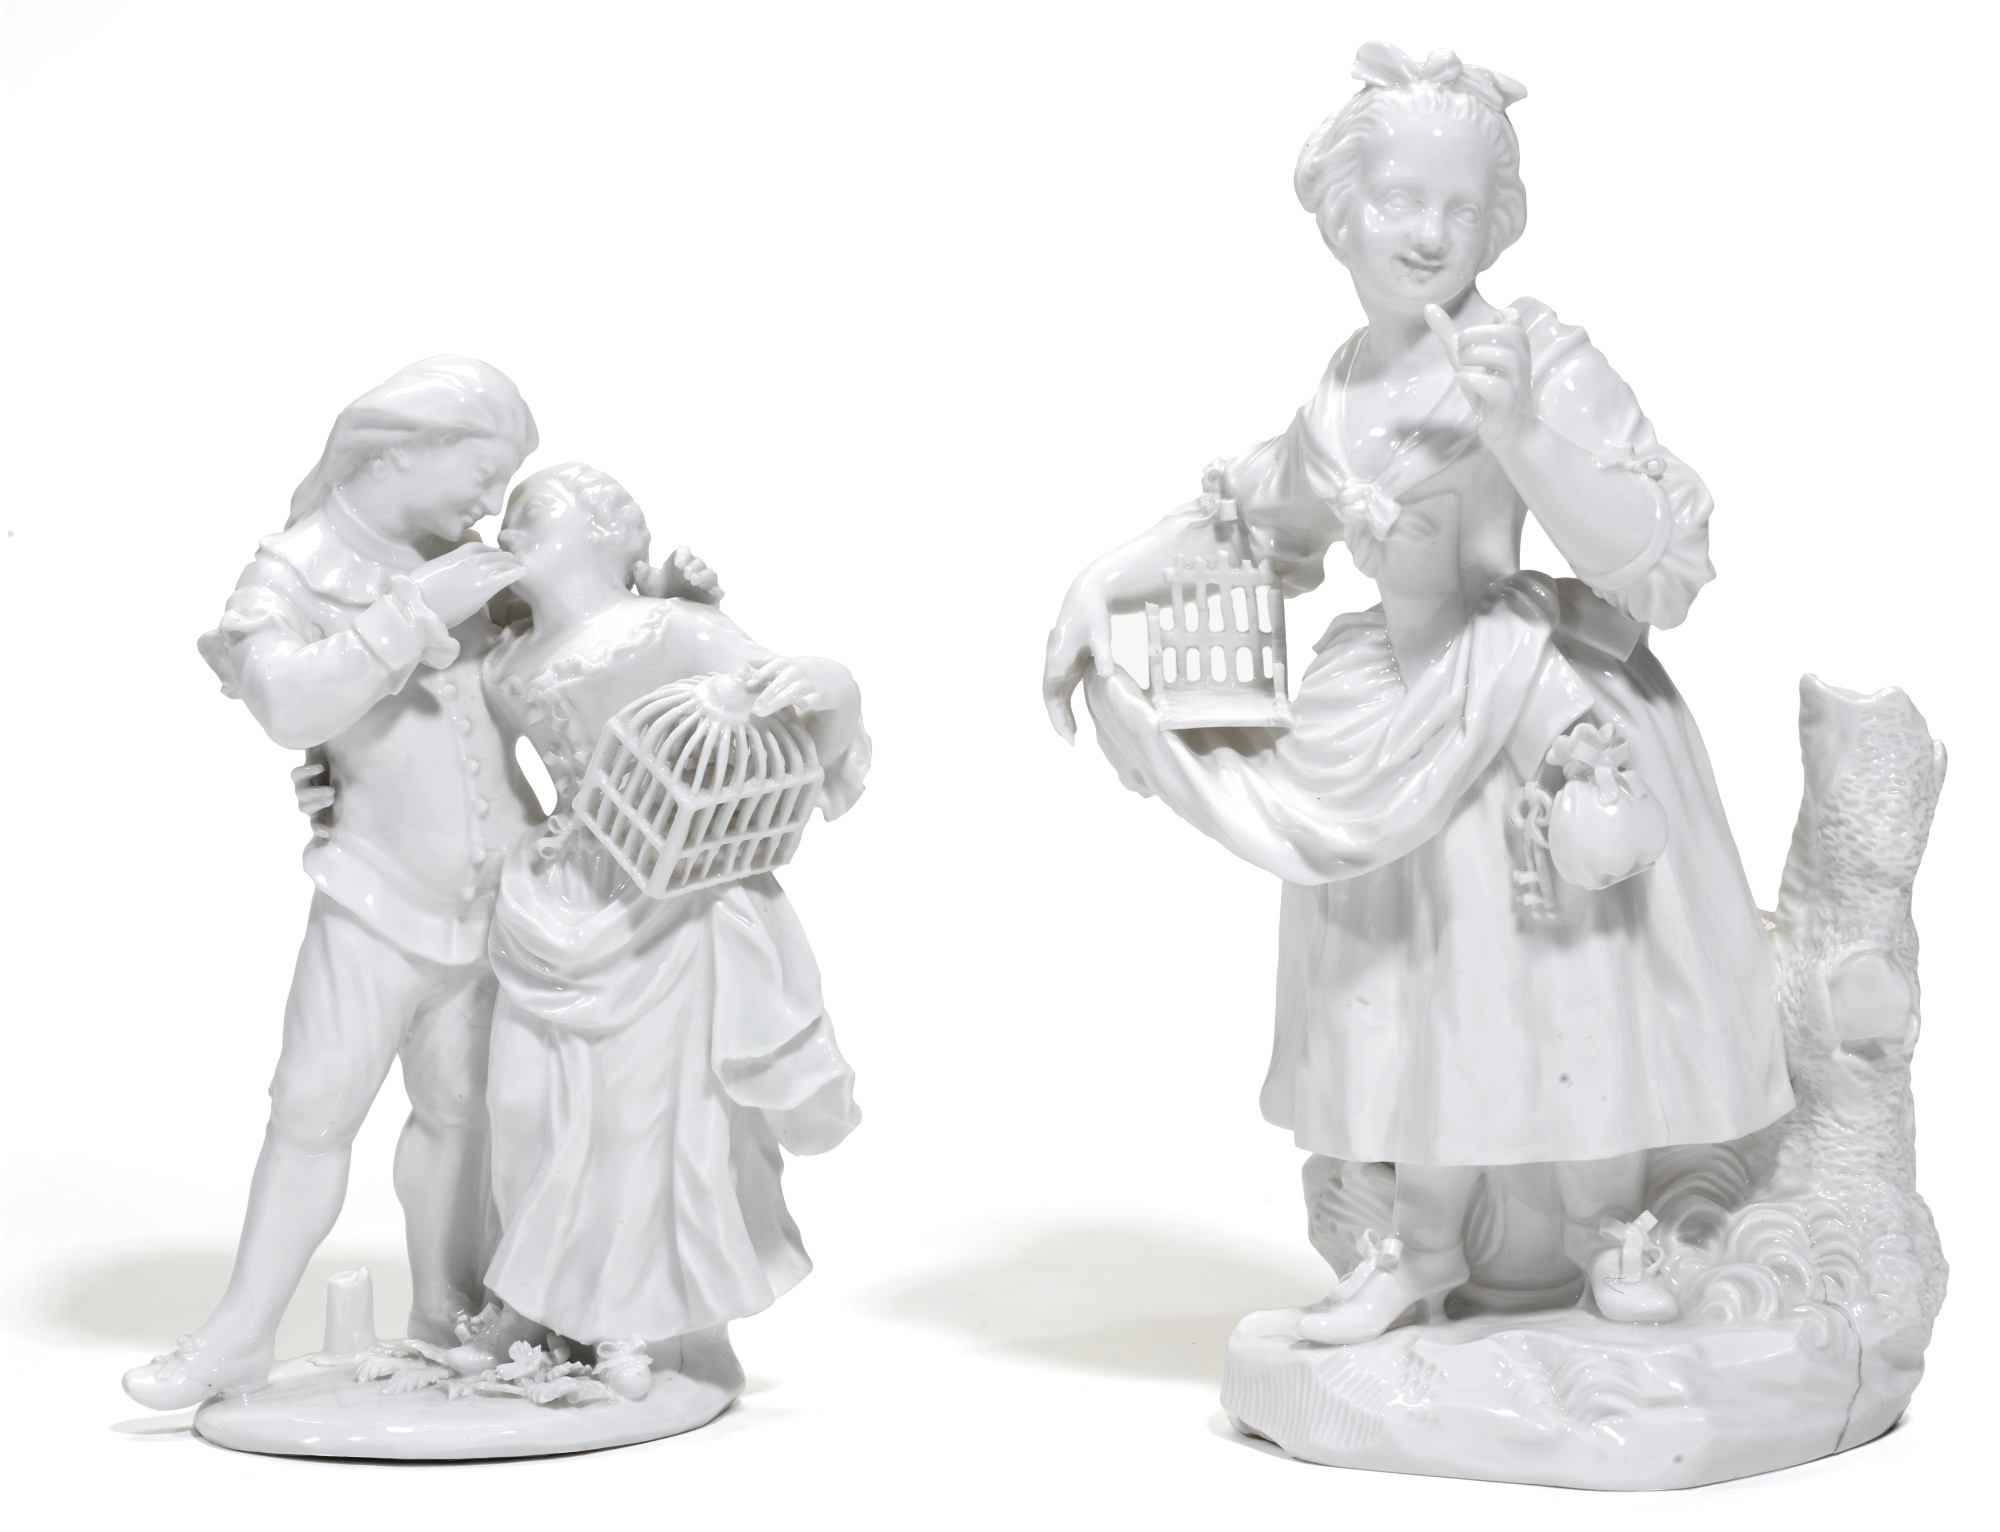 A BERLIN (WEGLEY) WHITE COMMEDIA DELL'ARTE GROUP AND A FIGURE OF A GIRL, BOTH CIRCA 1755